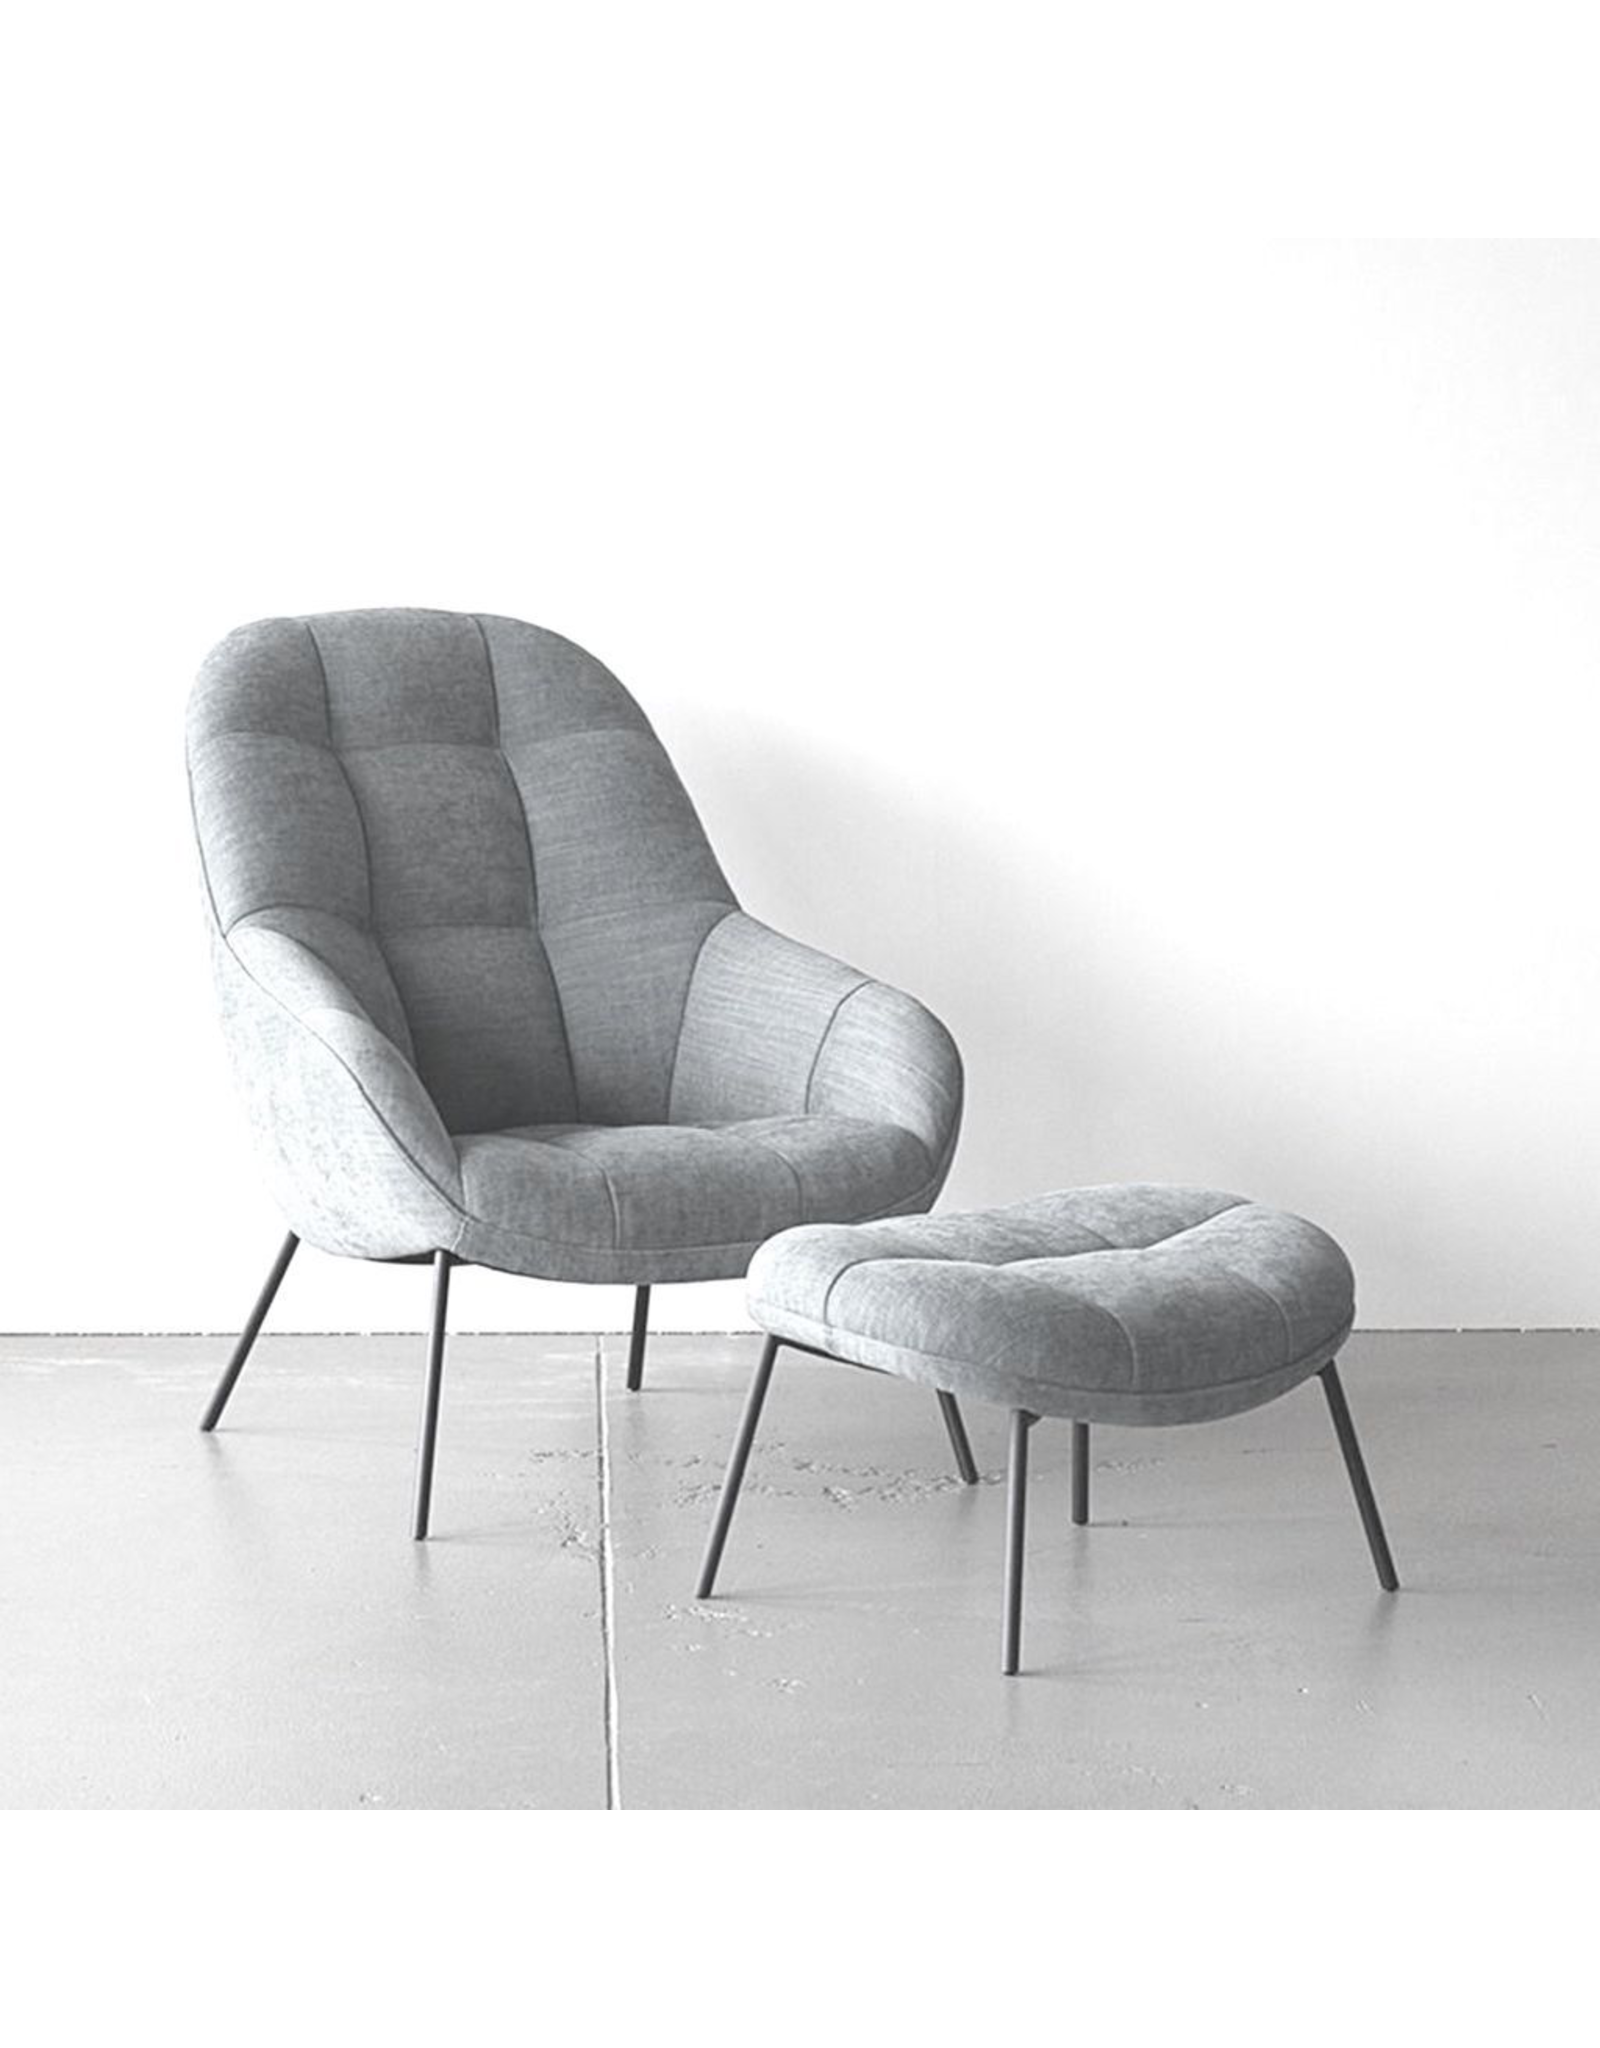 WON DESIGN MANGO LOUNGE CHAIR WITH FOOT REST IN LIGHT GREY